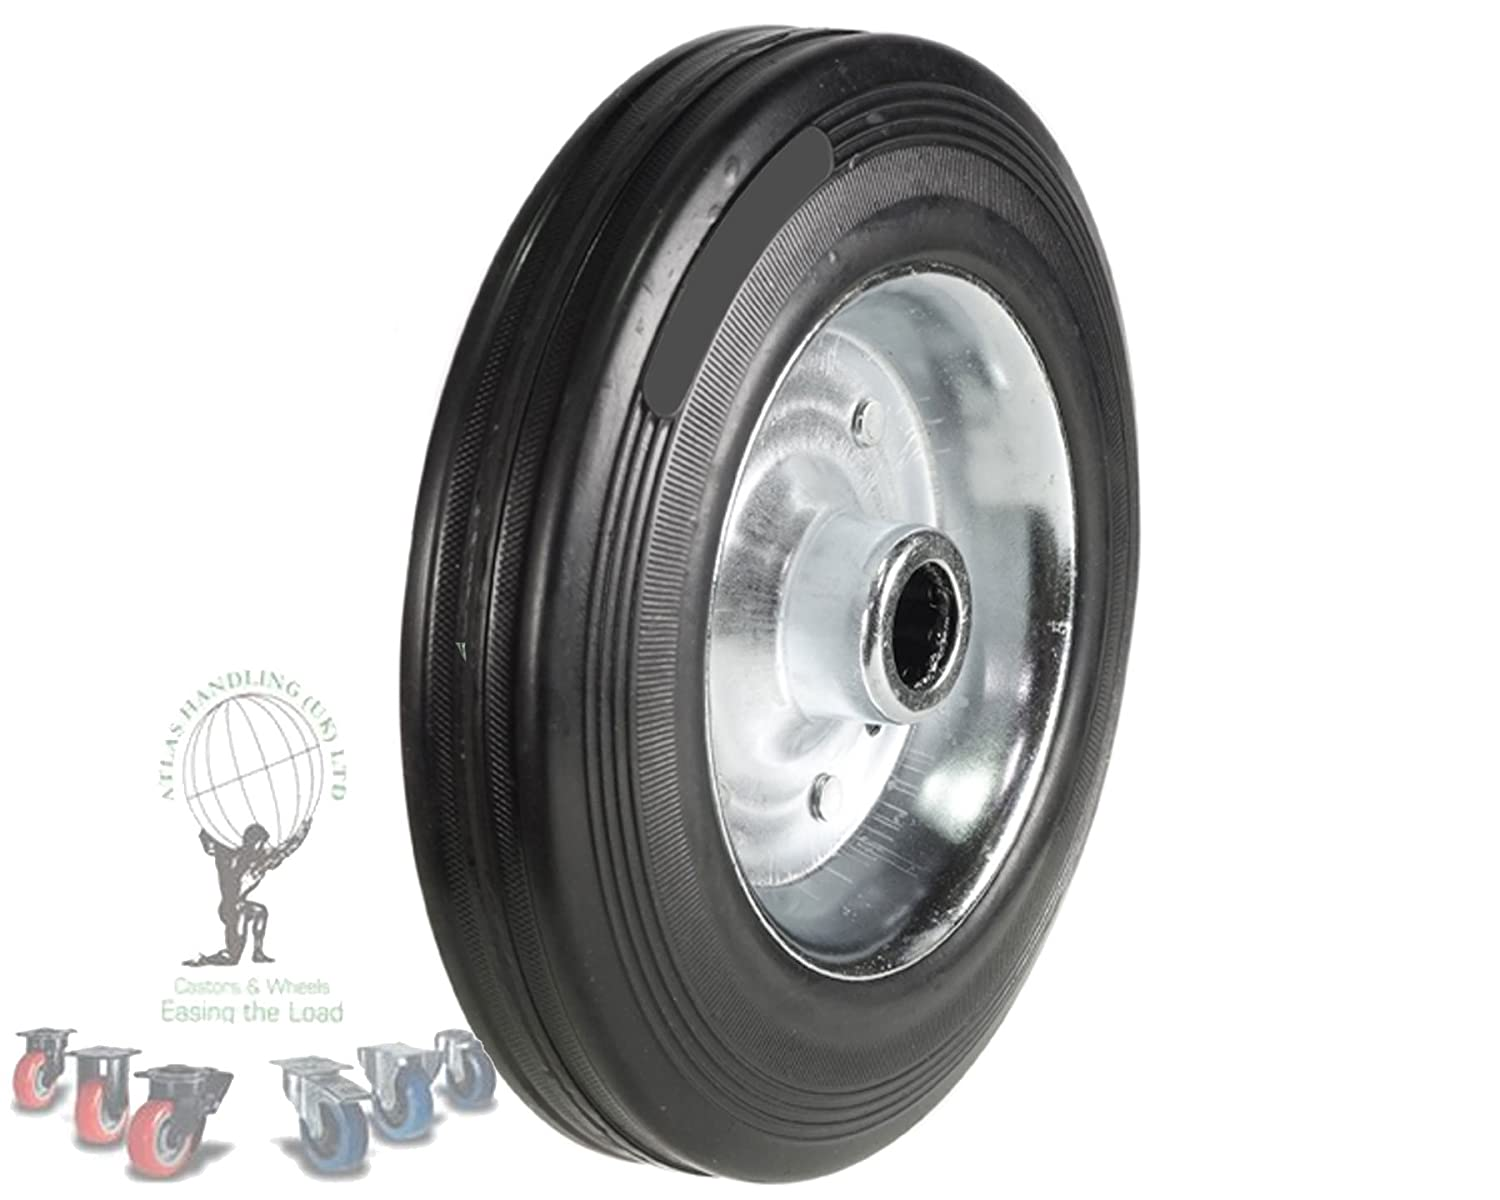 125mm Wheel with Rubber on Steel Disc Centre 100kg Capacity Atlas Handling Uk Ltd